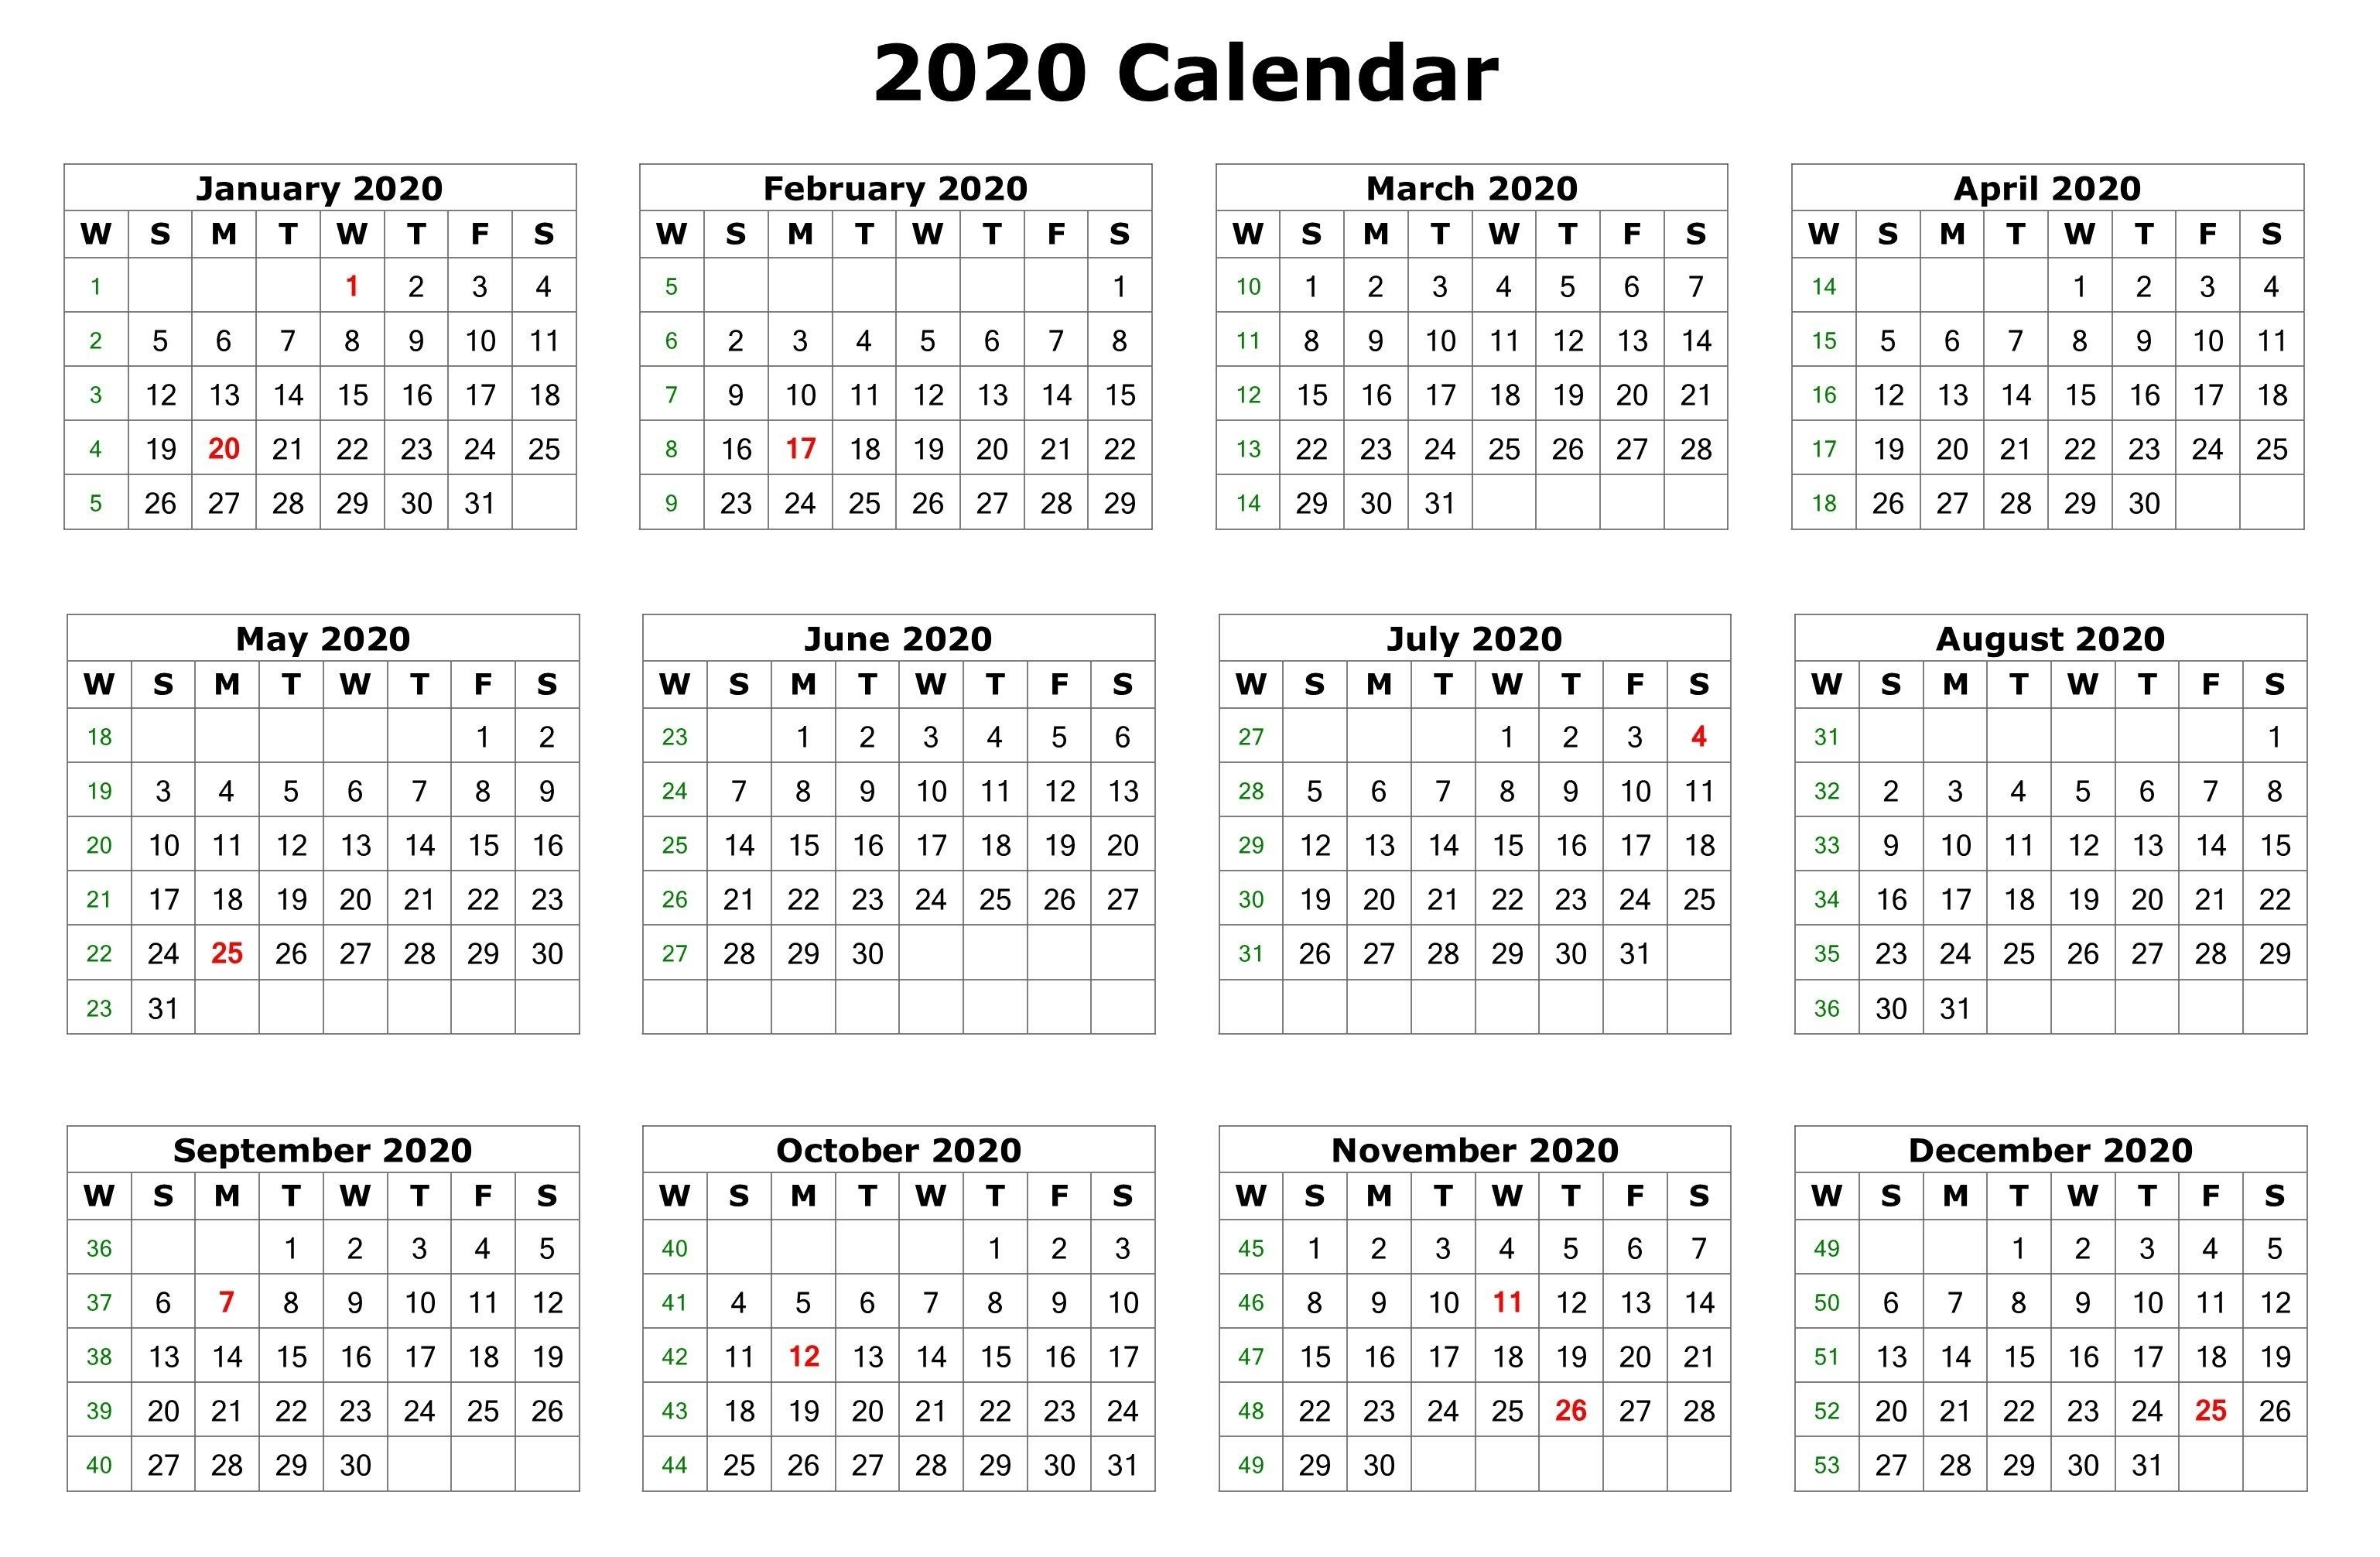 2020 12 Months Calendar Printable | 2020 Calendars-Blank Printable Calandes With 2 Months On A Page Year 2020